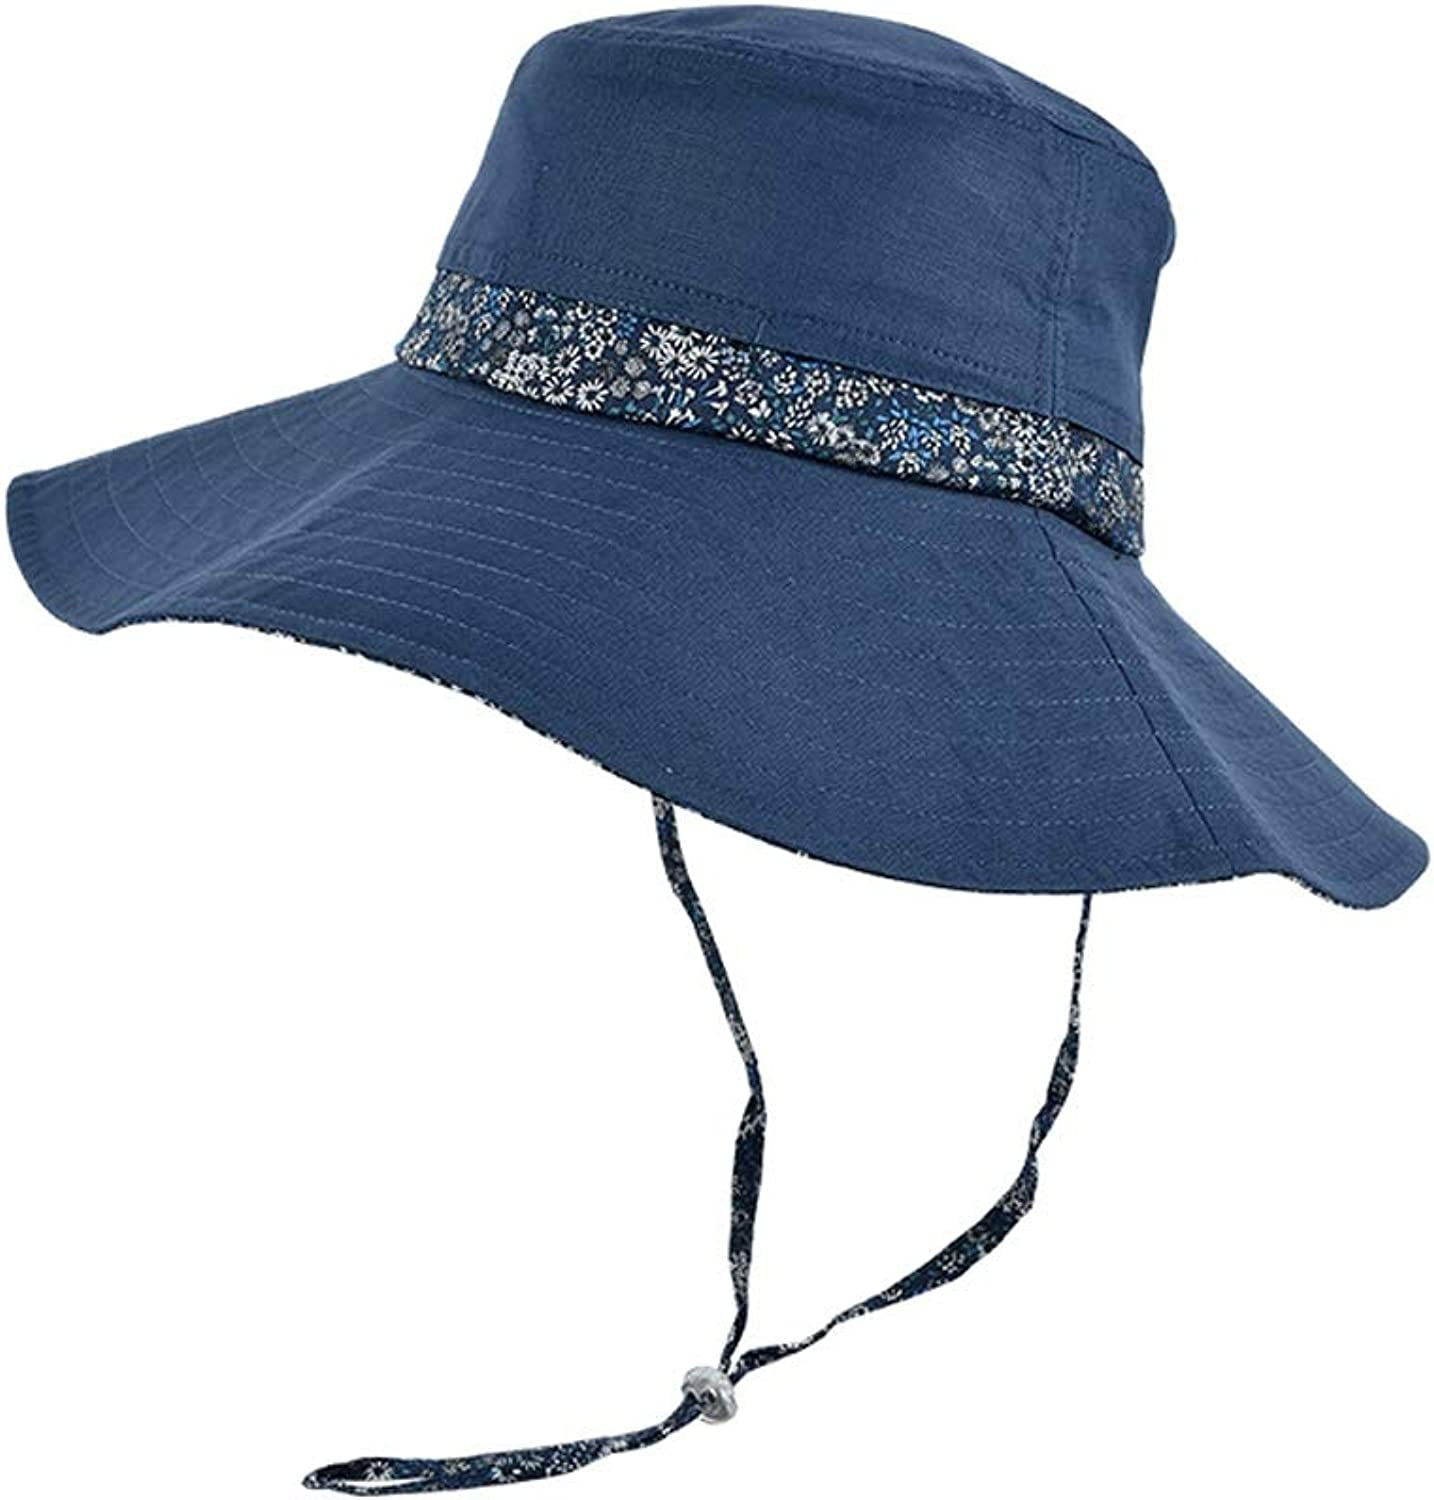 Sunhat Ladies Sun Hat Folding Travel Beach Hat, Sun Predection Outdoor Sports Hat, Bucket Cap (2 colors Optional) (color   bluee)